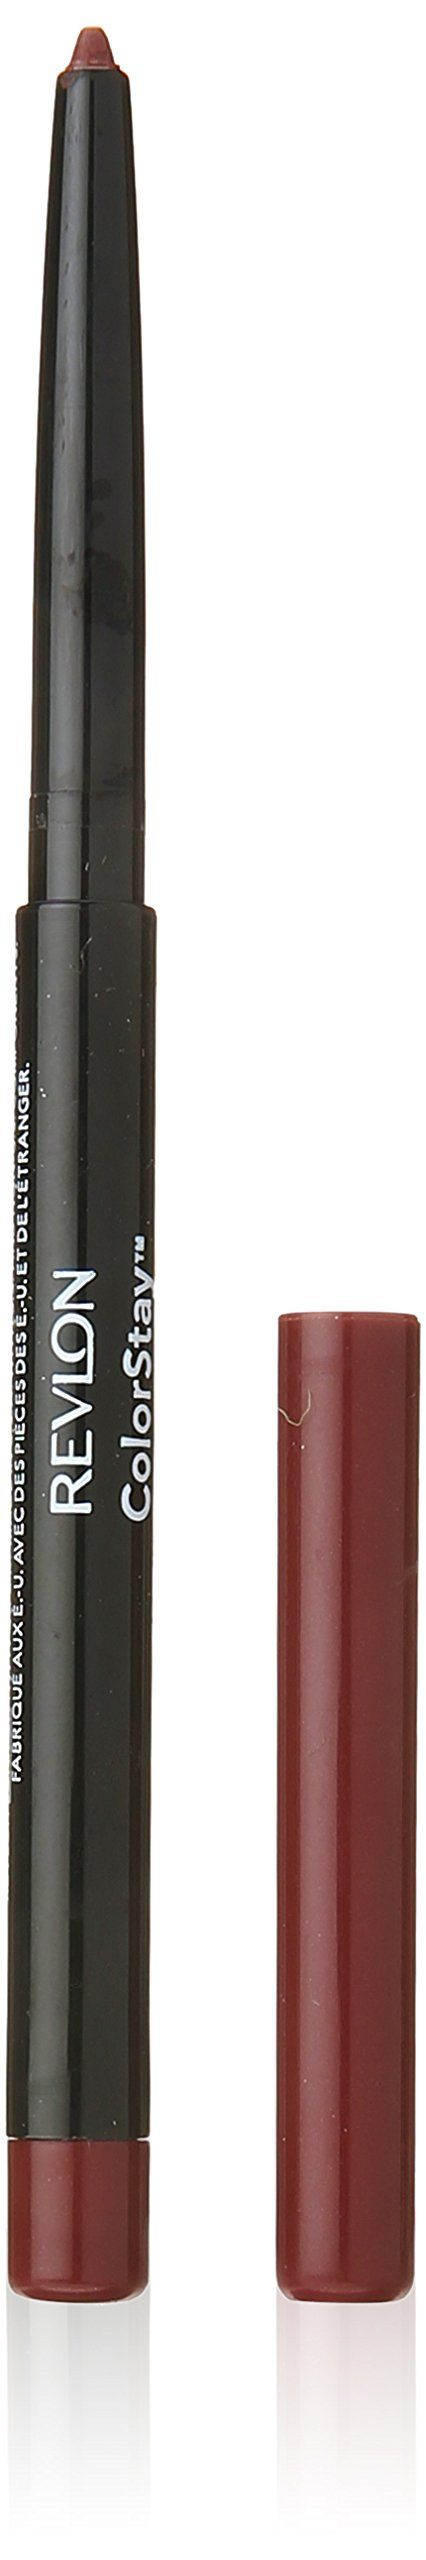 Revlon Colorstay Lipliner, Plum, 0.01 Ounce. Perfect any lip look with Colorstay Lipliner, now updated to include full-coverage, sheer, and clear shades. Exclusive Colorstay technology with SoftFlex provides longwearing definition, helps lipcolor last longer and prevents feathering and bleeding. Available in 10 full- coverage shades, 5 sheer shades, and 1 clear shade.